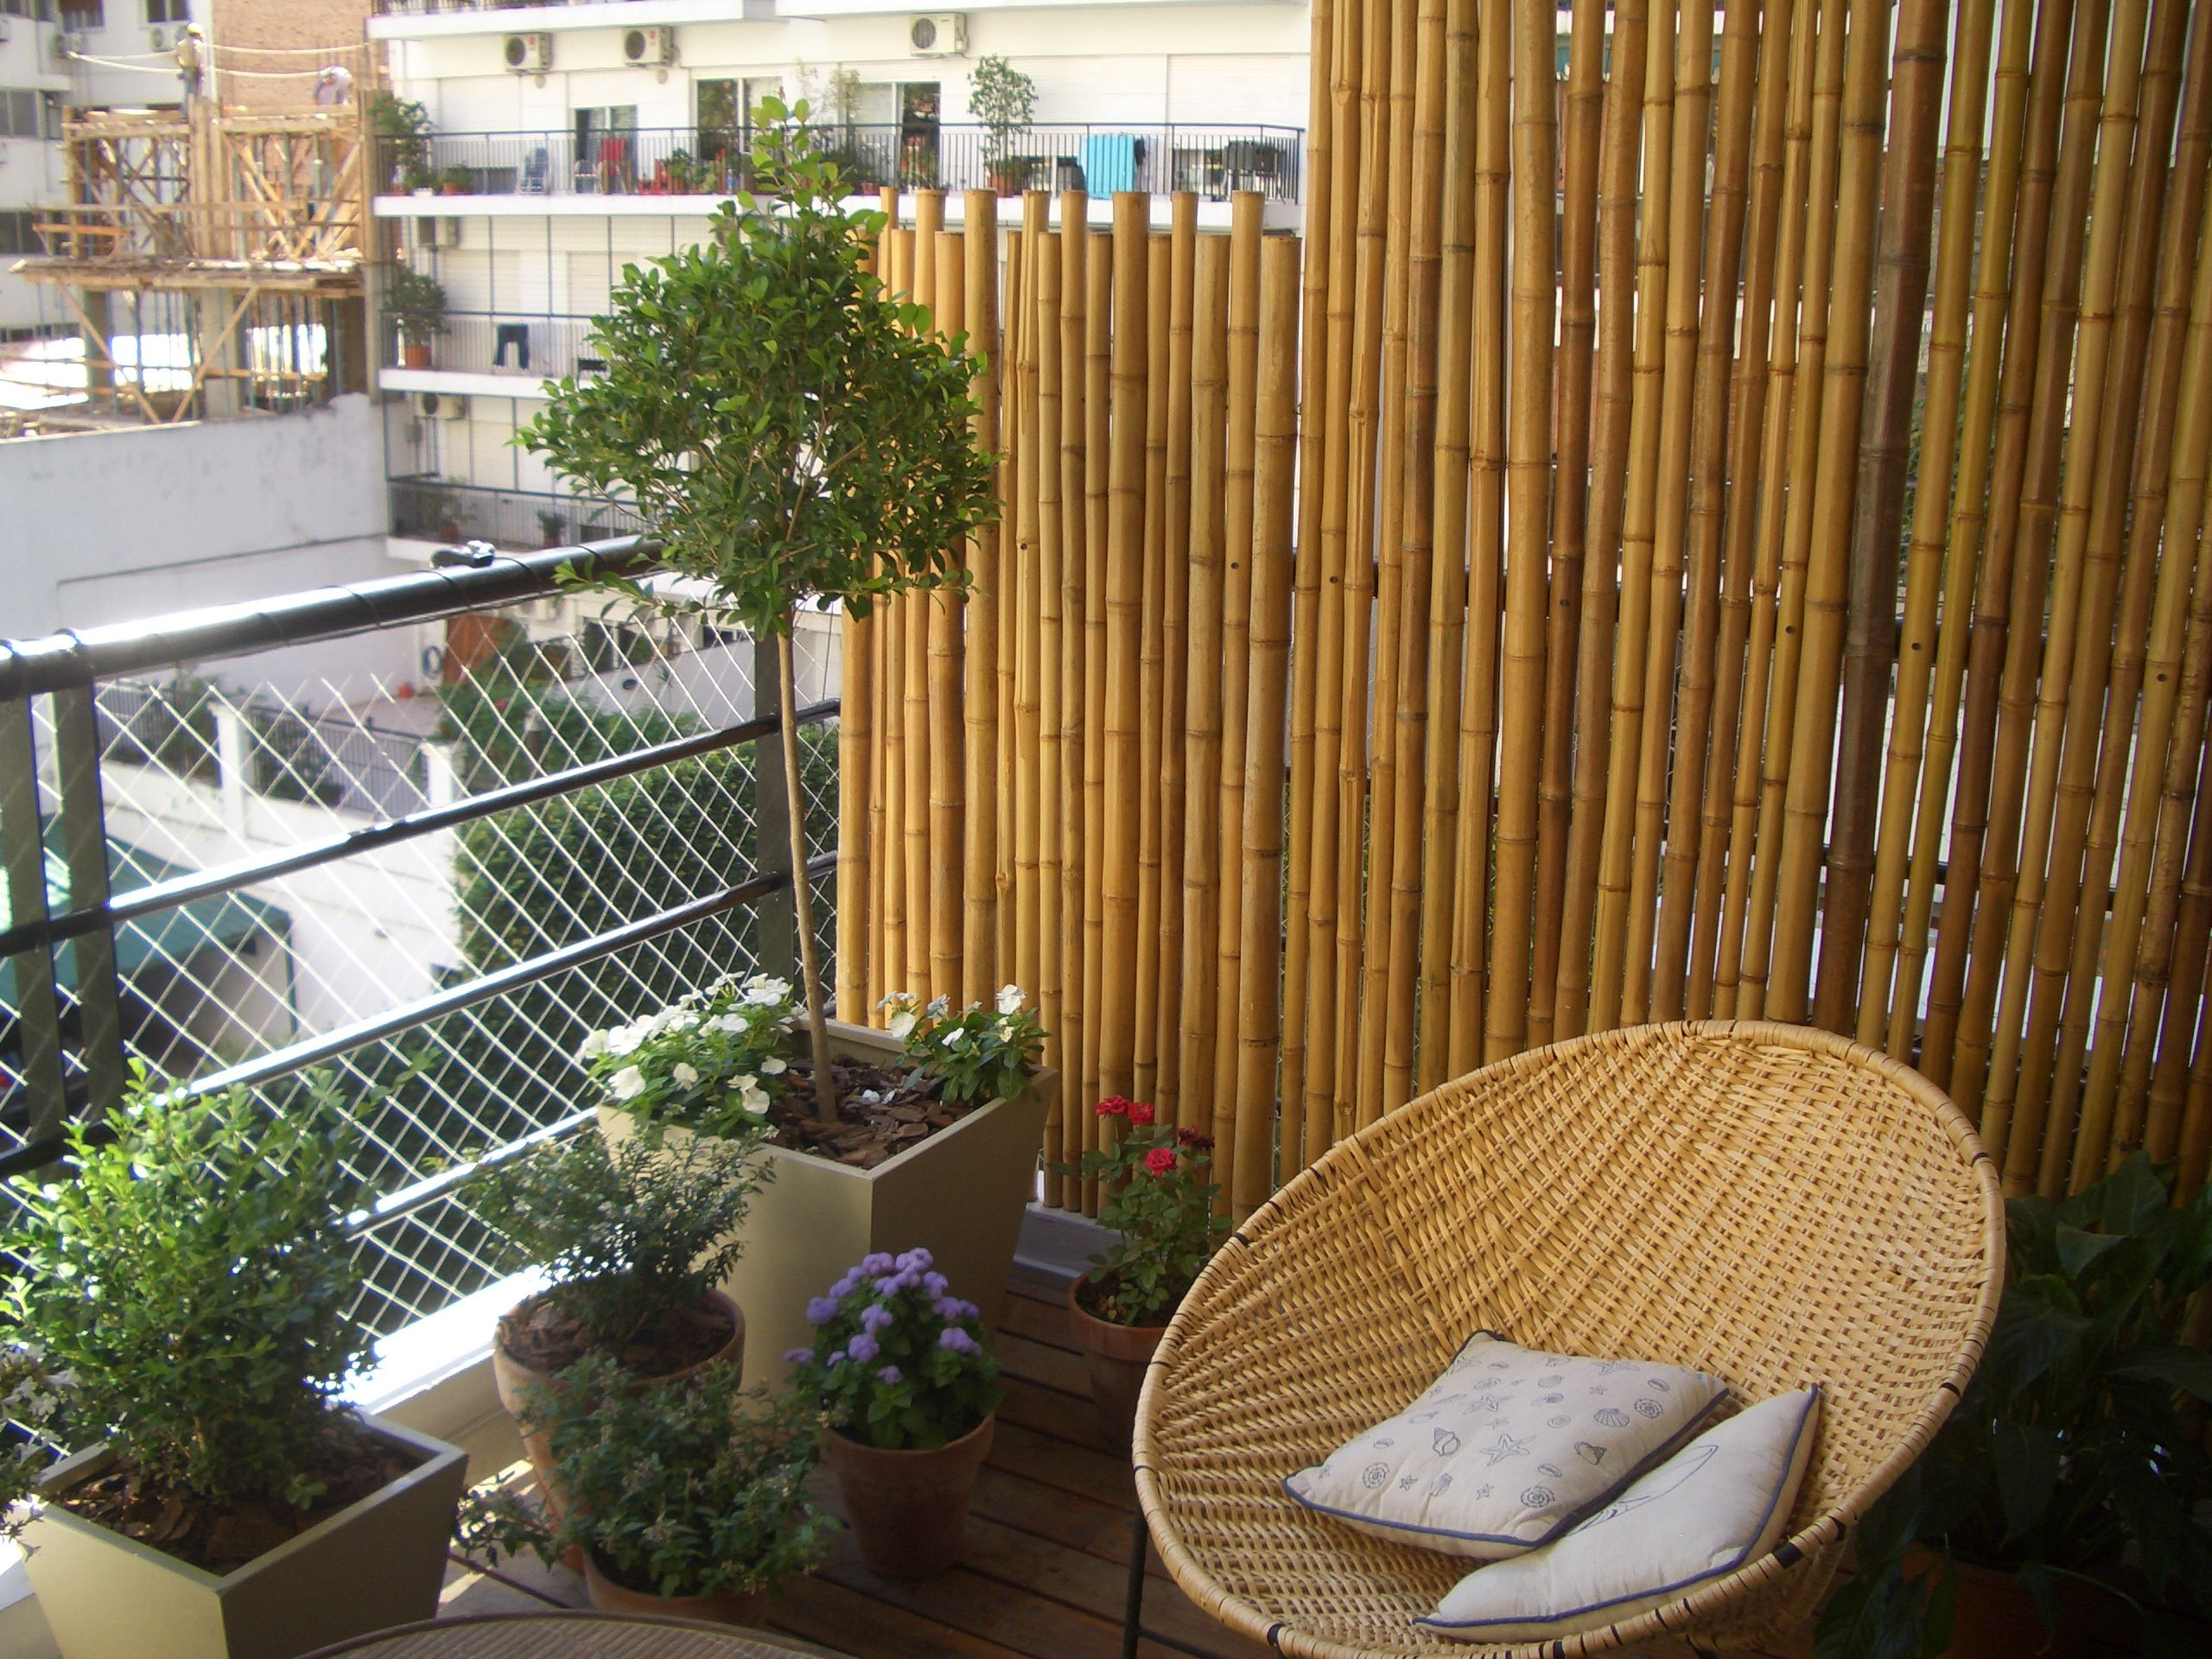 Balcon con ca as en 2019 balcones peque os balcones y - Cana bambu decoracion ...